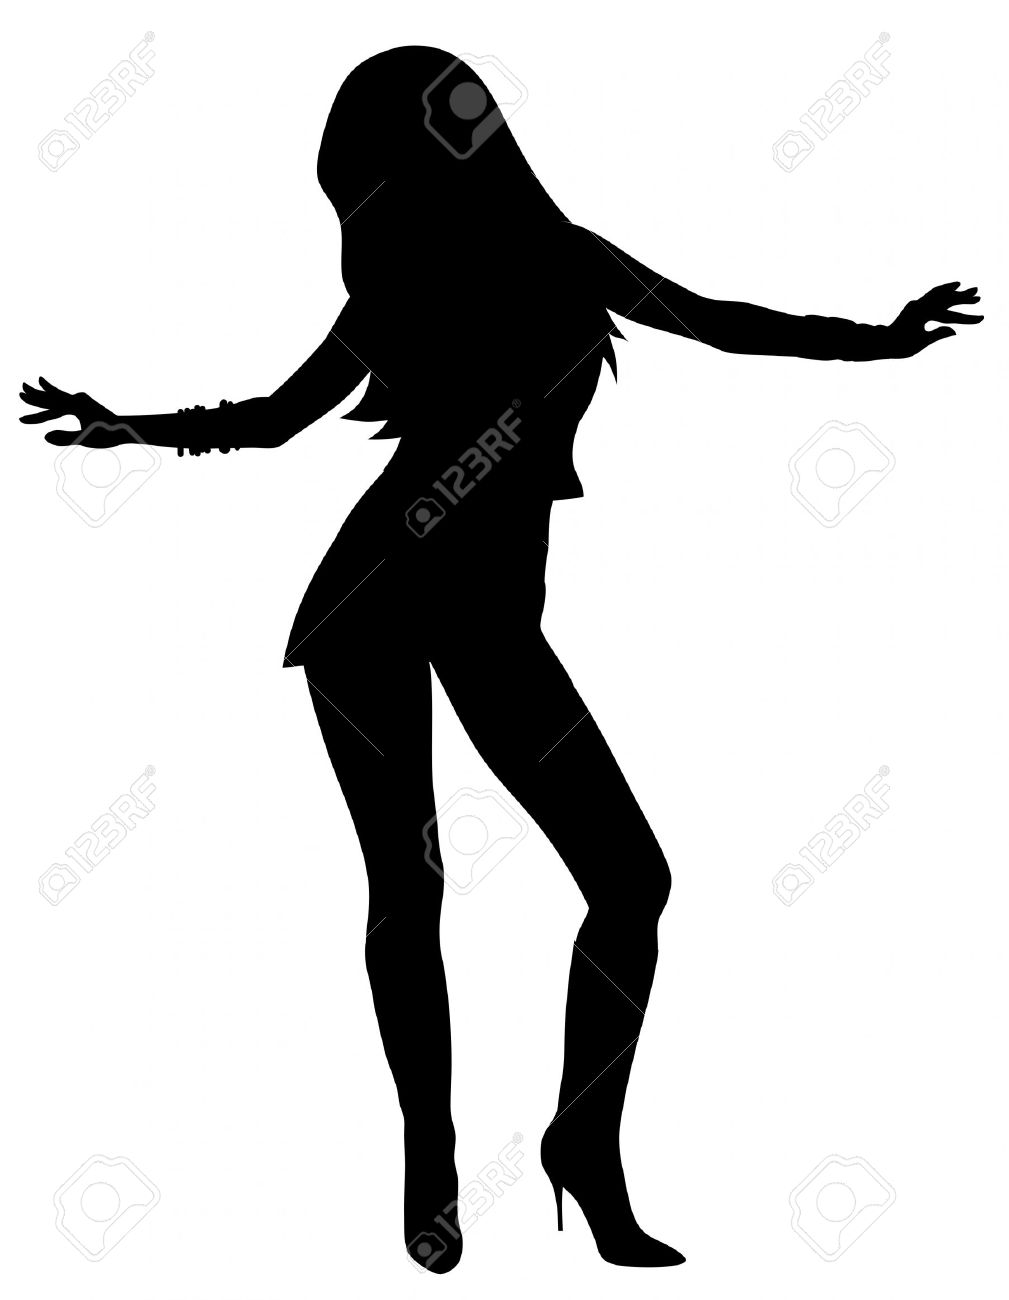 Dancing Silhouette Image at GetDrawings.com.